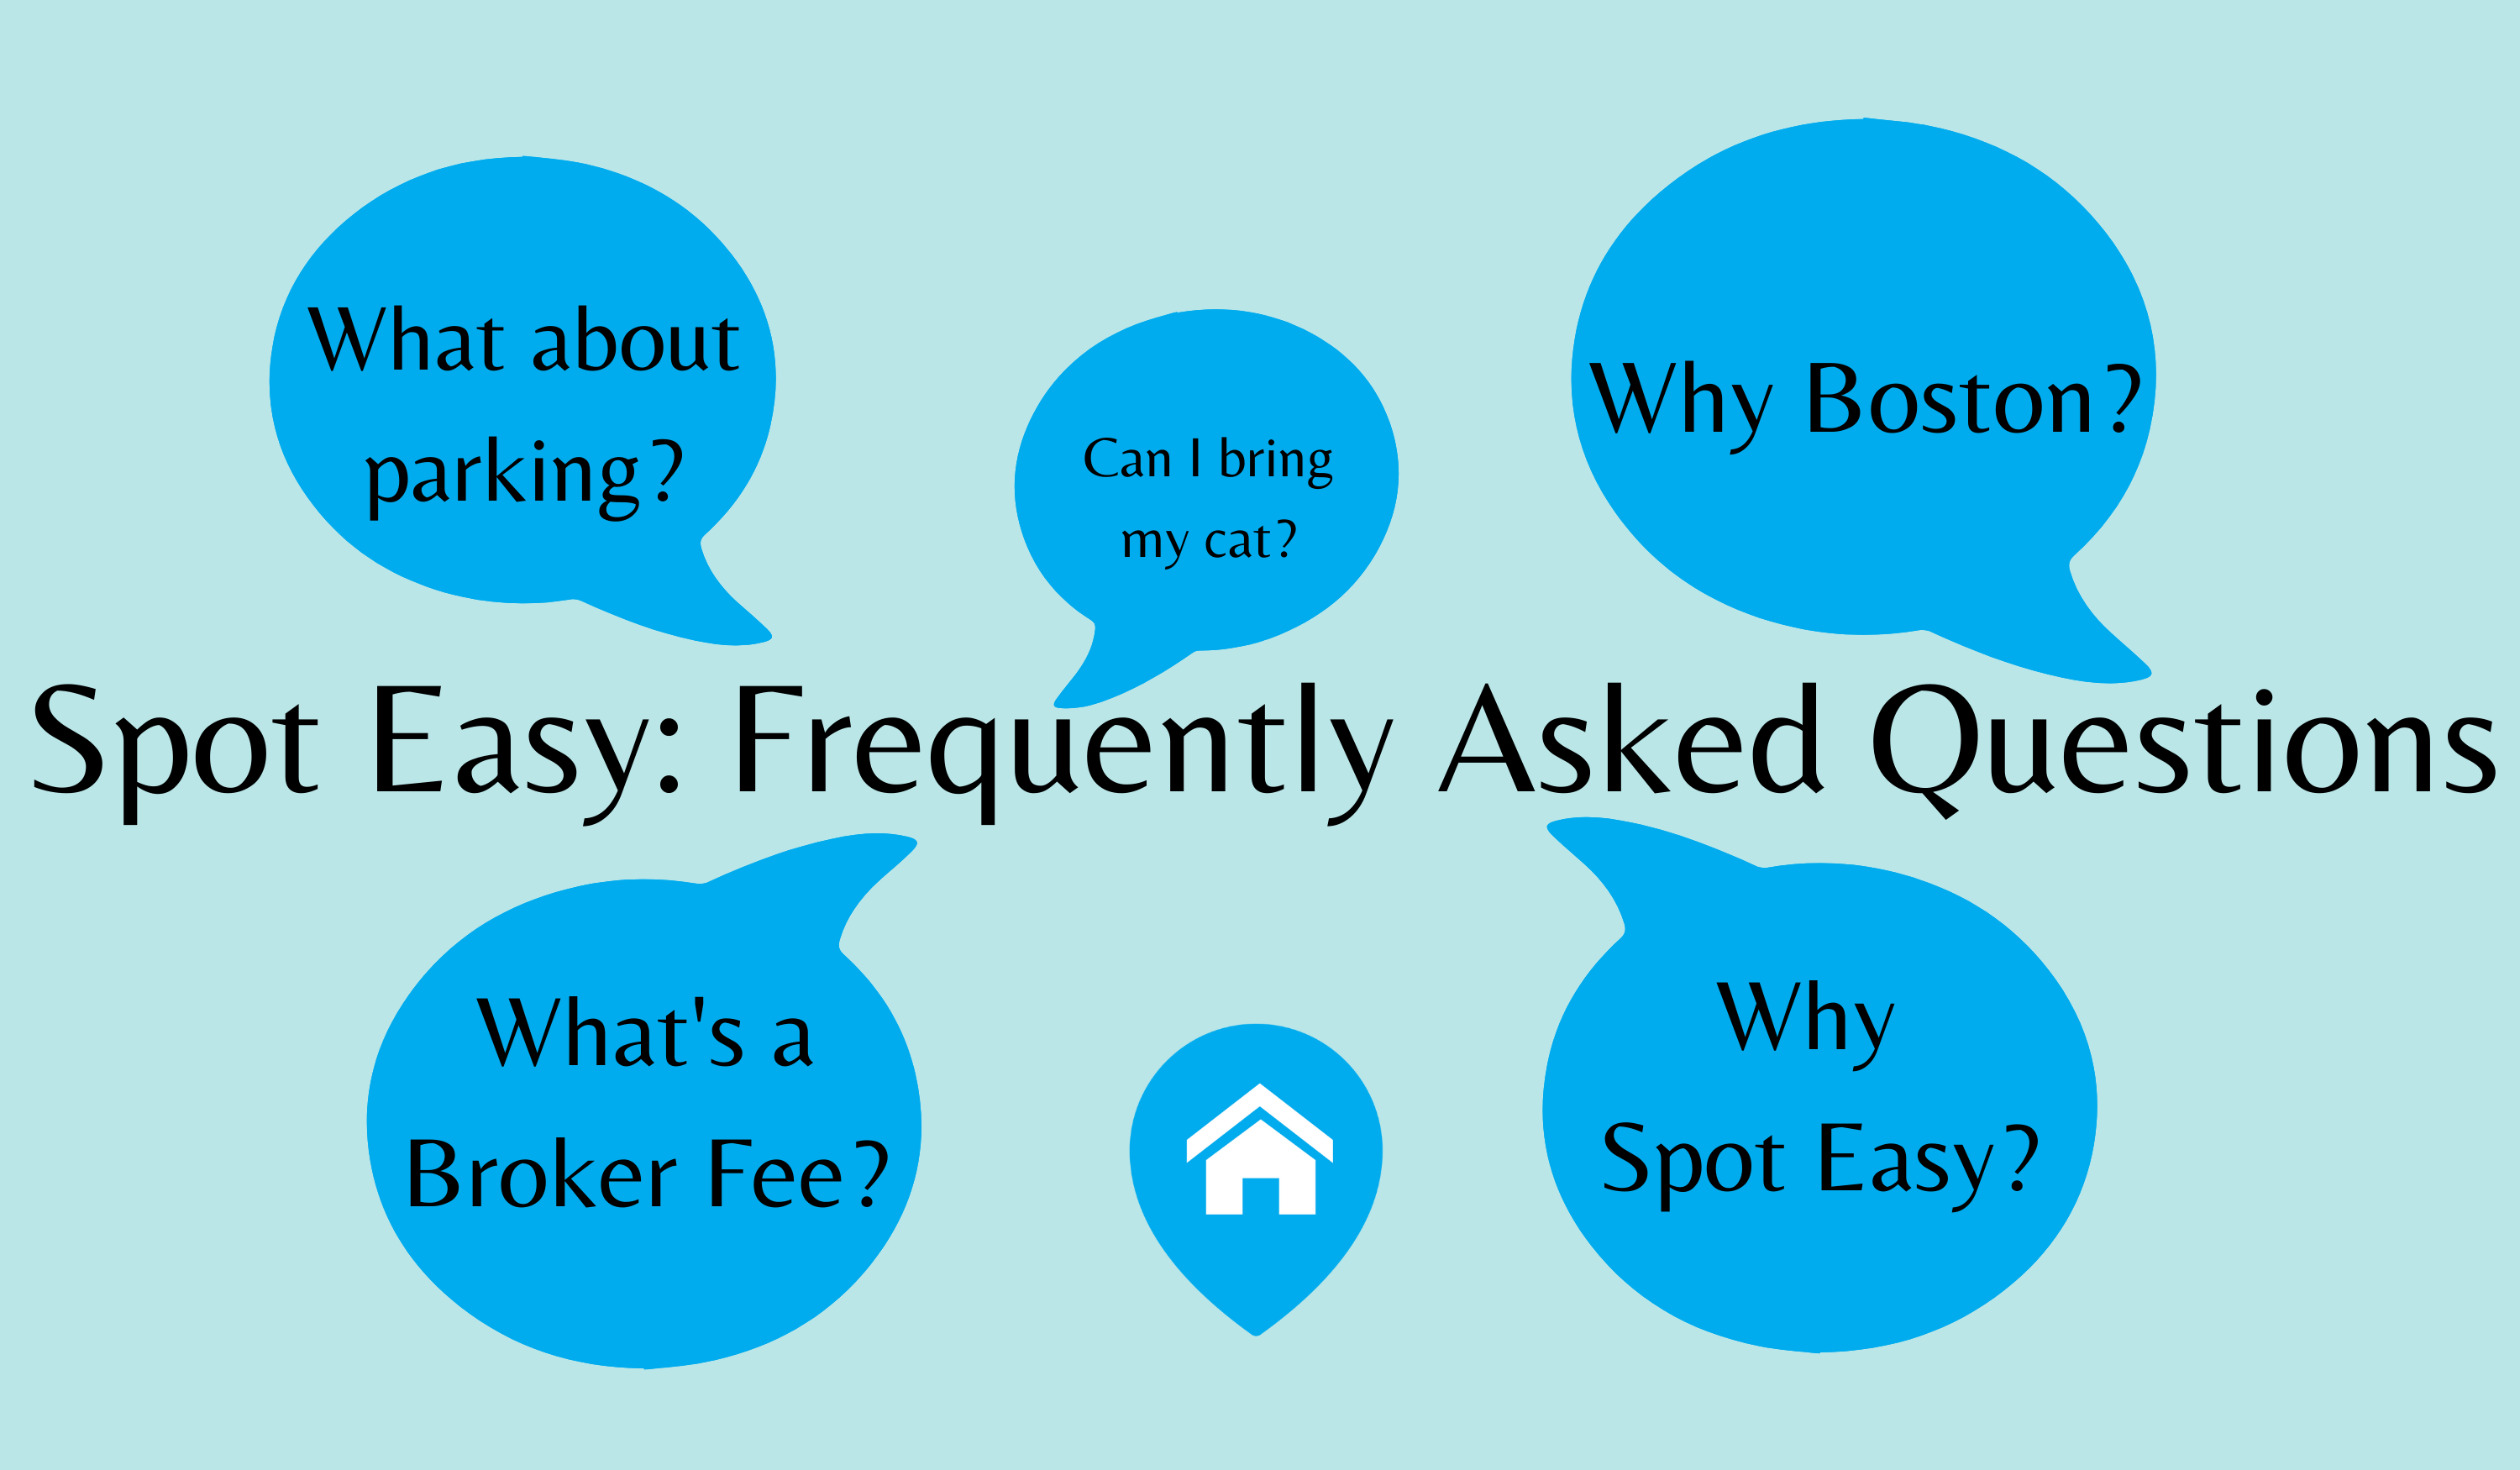 photo saying spot easy: frequently asked questions with blue text bubbles asking common rental questions